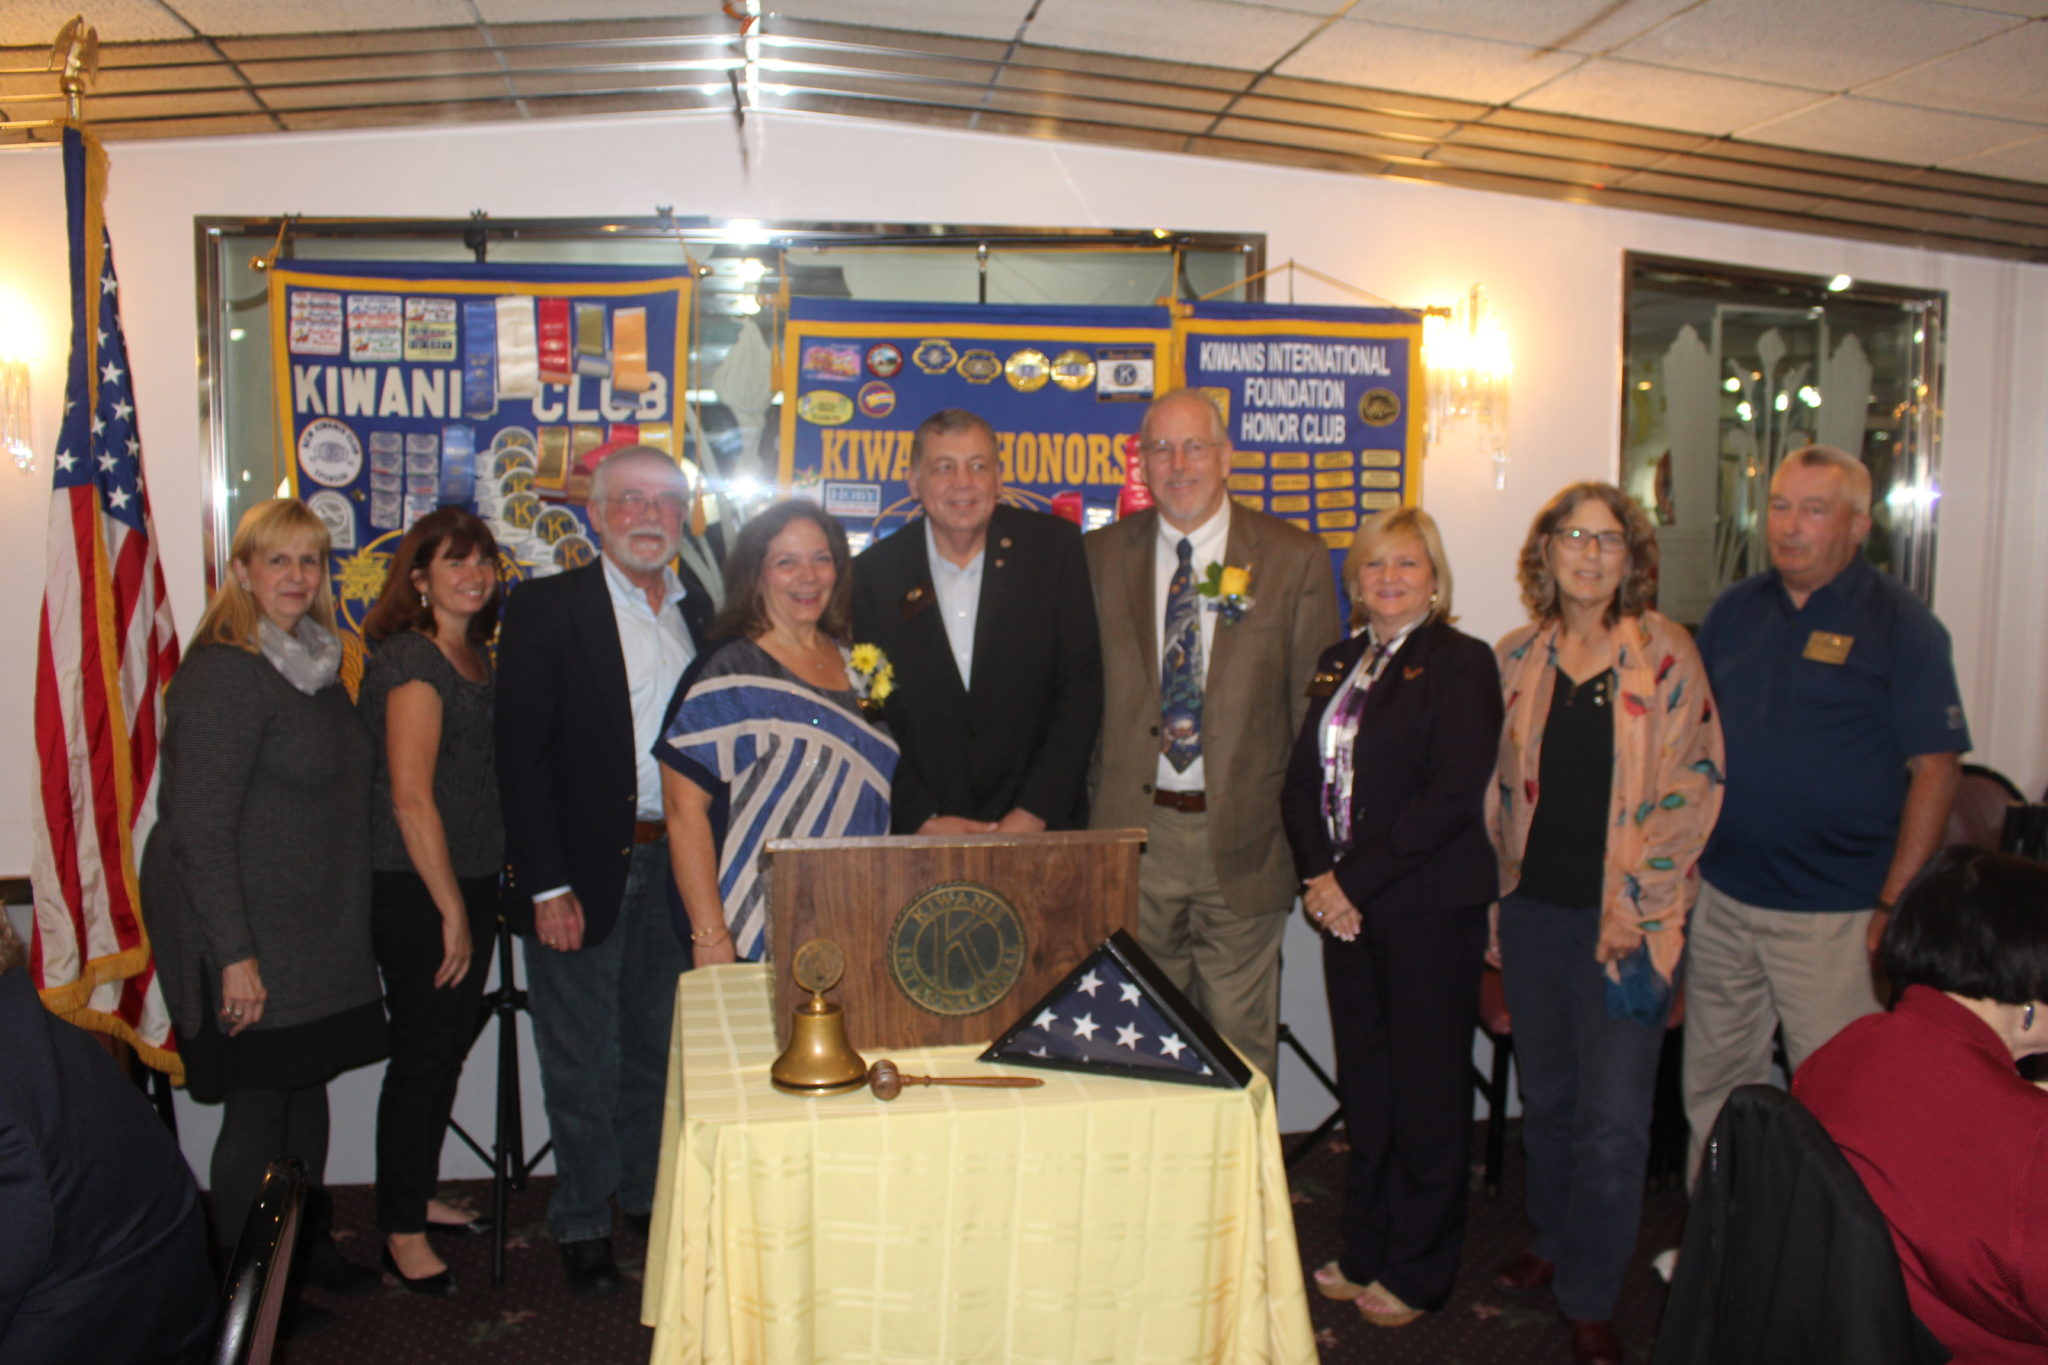 Newly sworn in officers at Kiwanis Club of Greater Parsippany